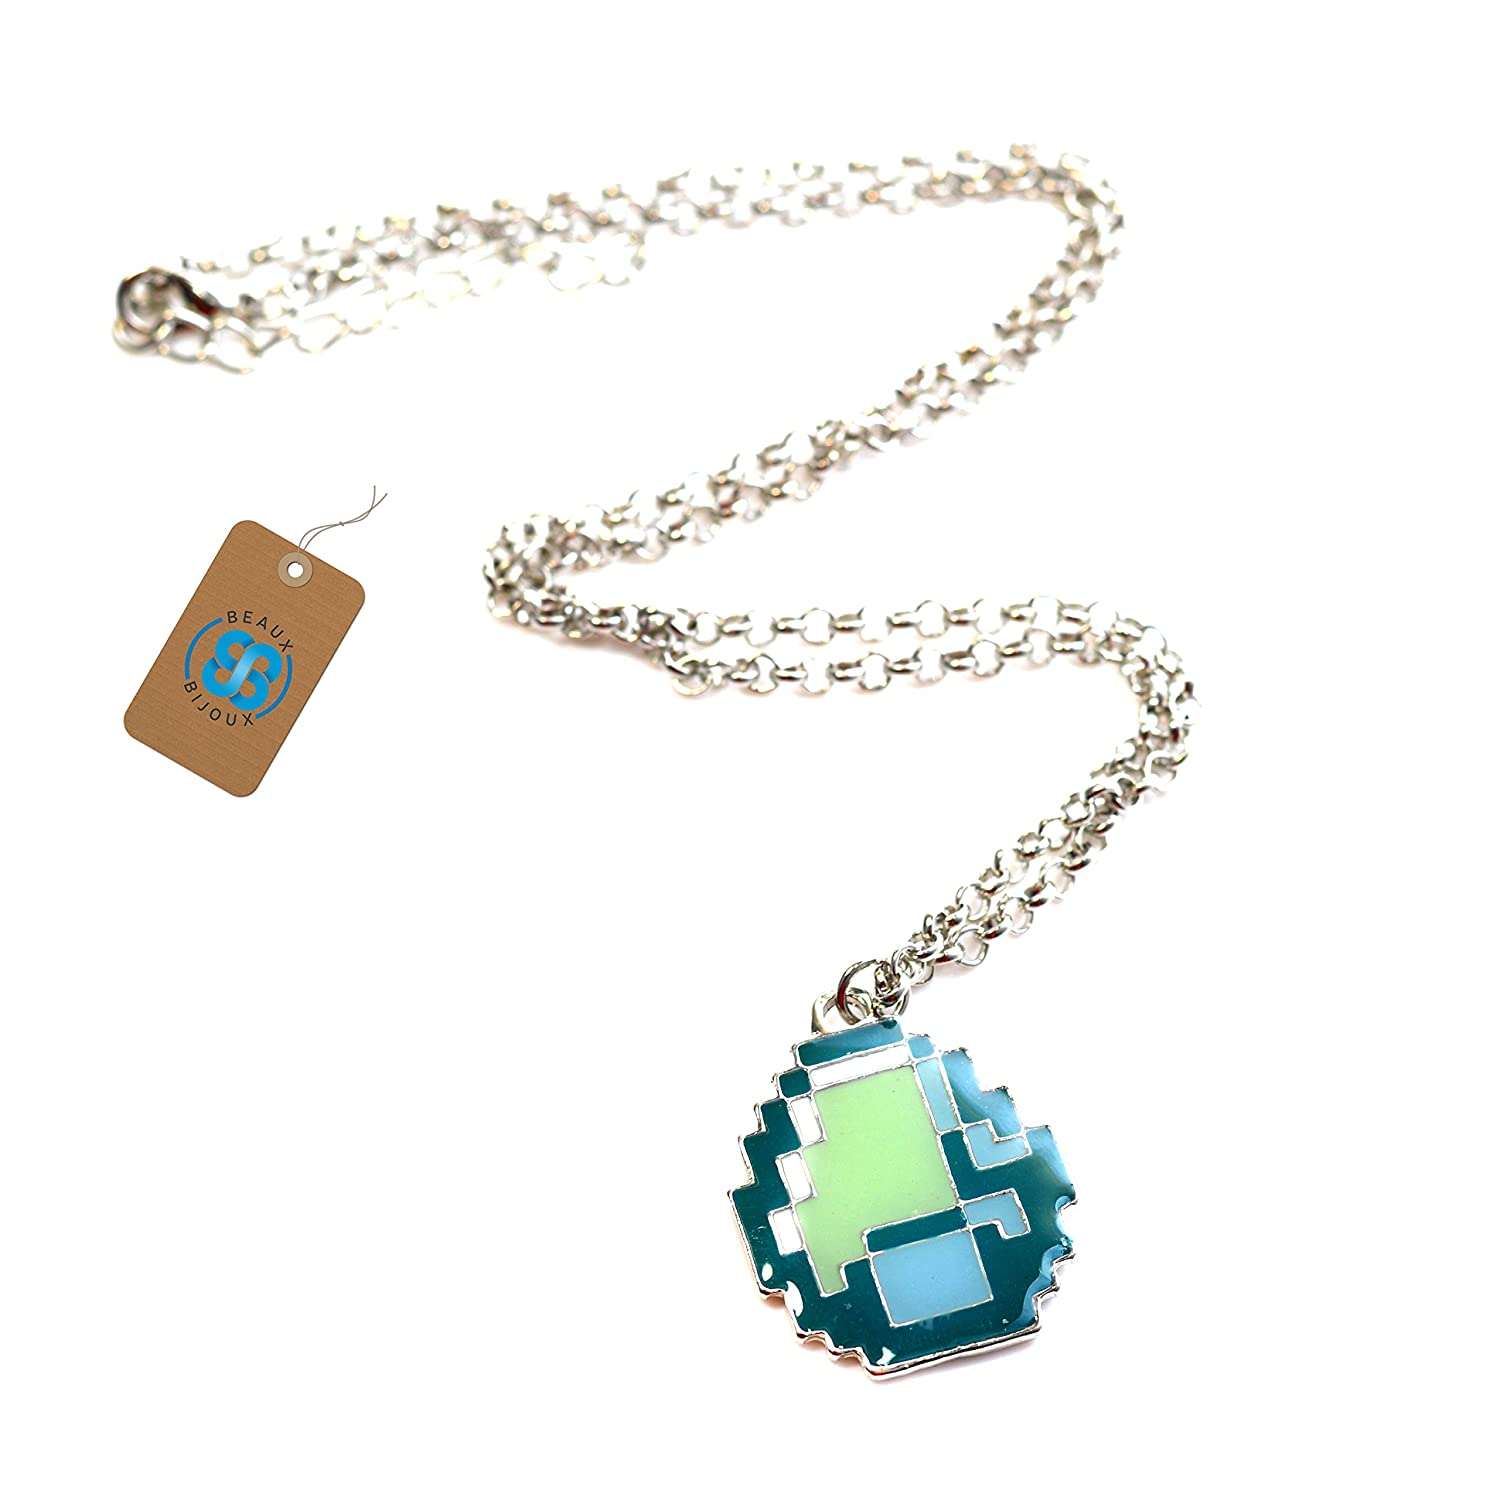 Beautiful minecraft diamond pendant necklace jewellrys website minecraft diamond necklace green pendant video game inspired aloadofball Choice Image